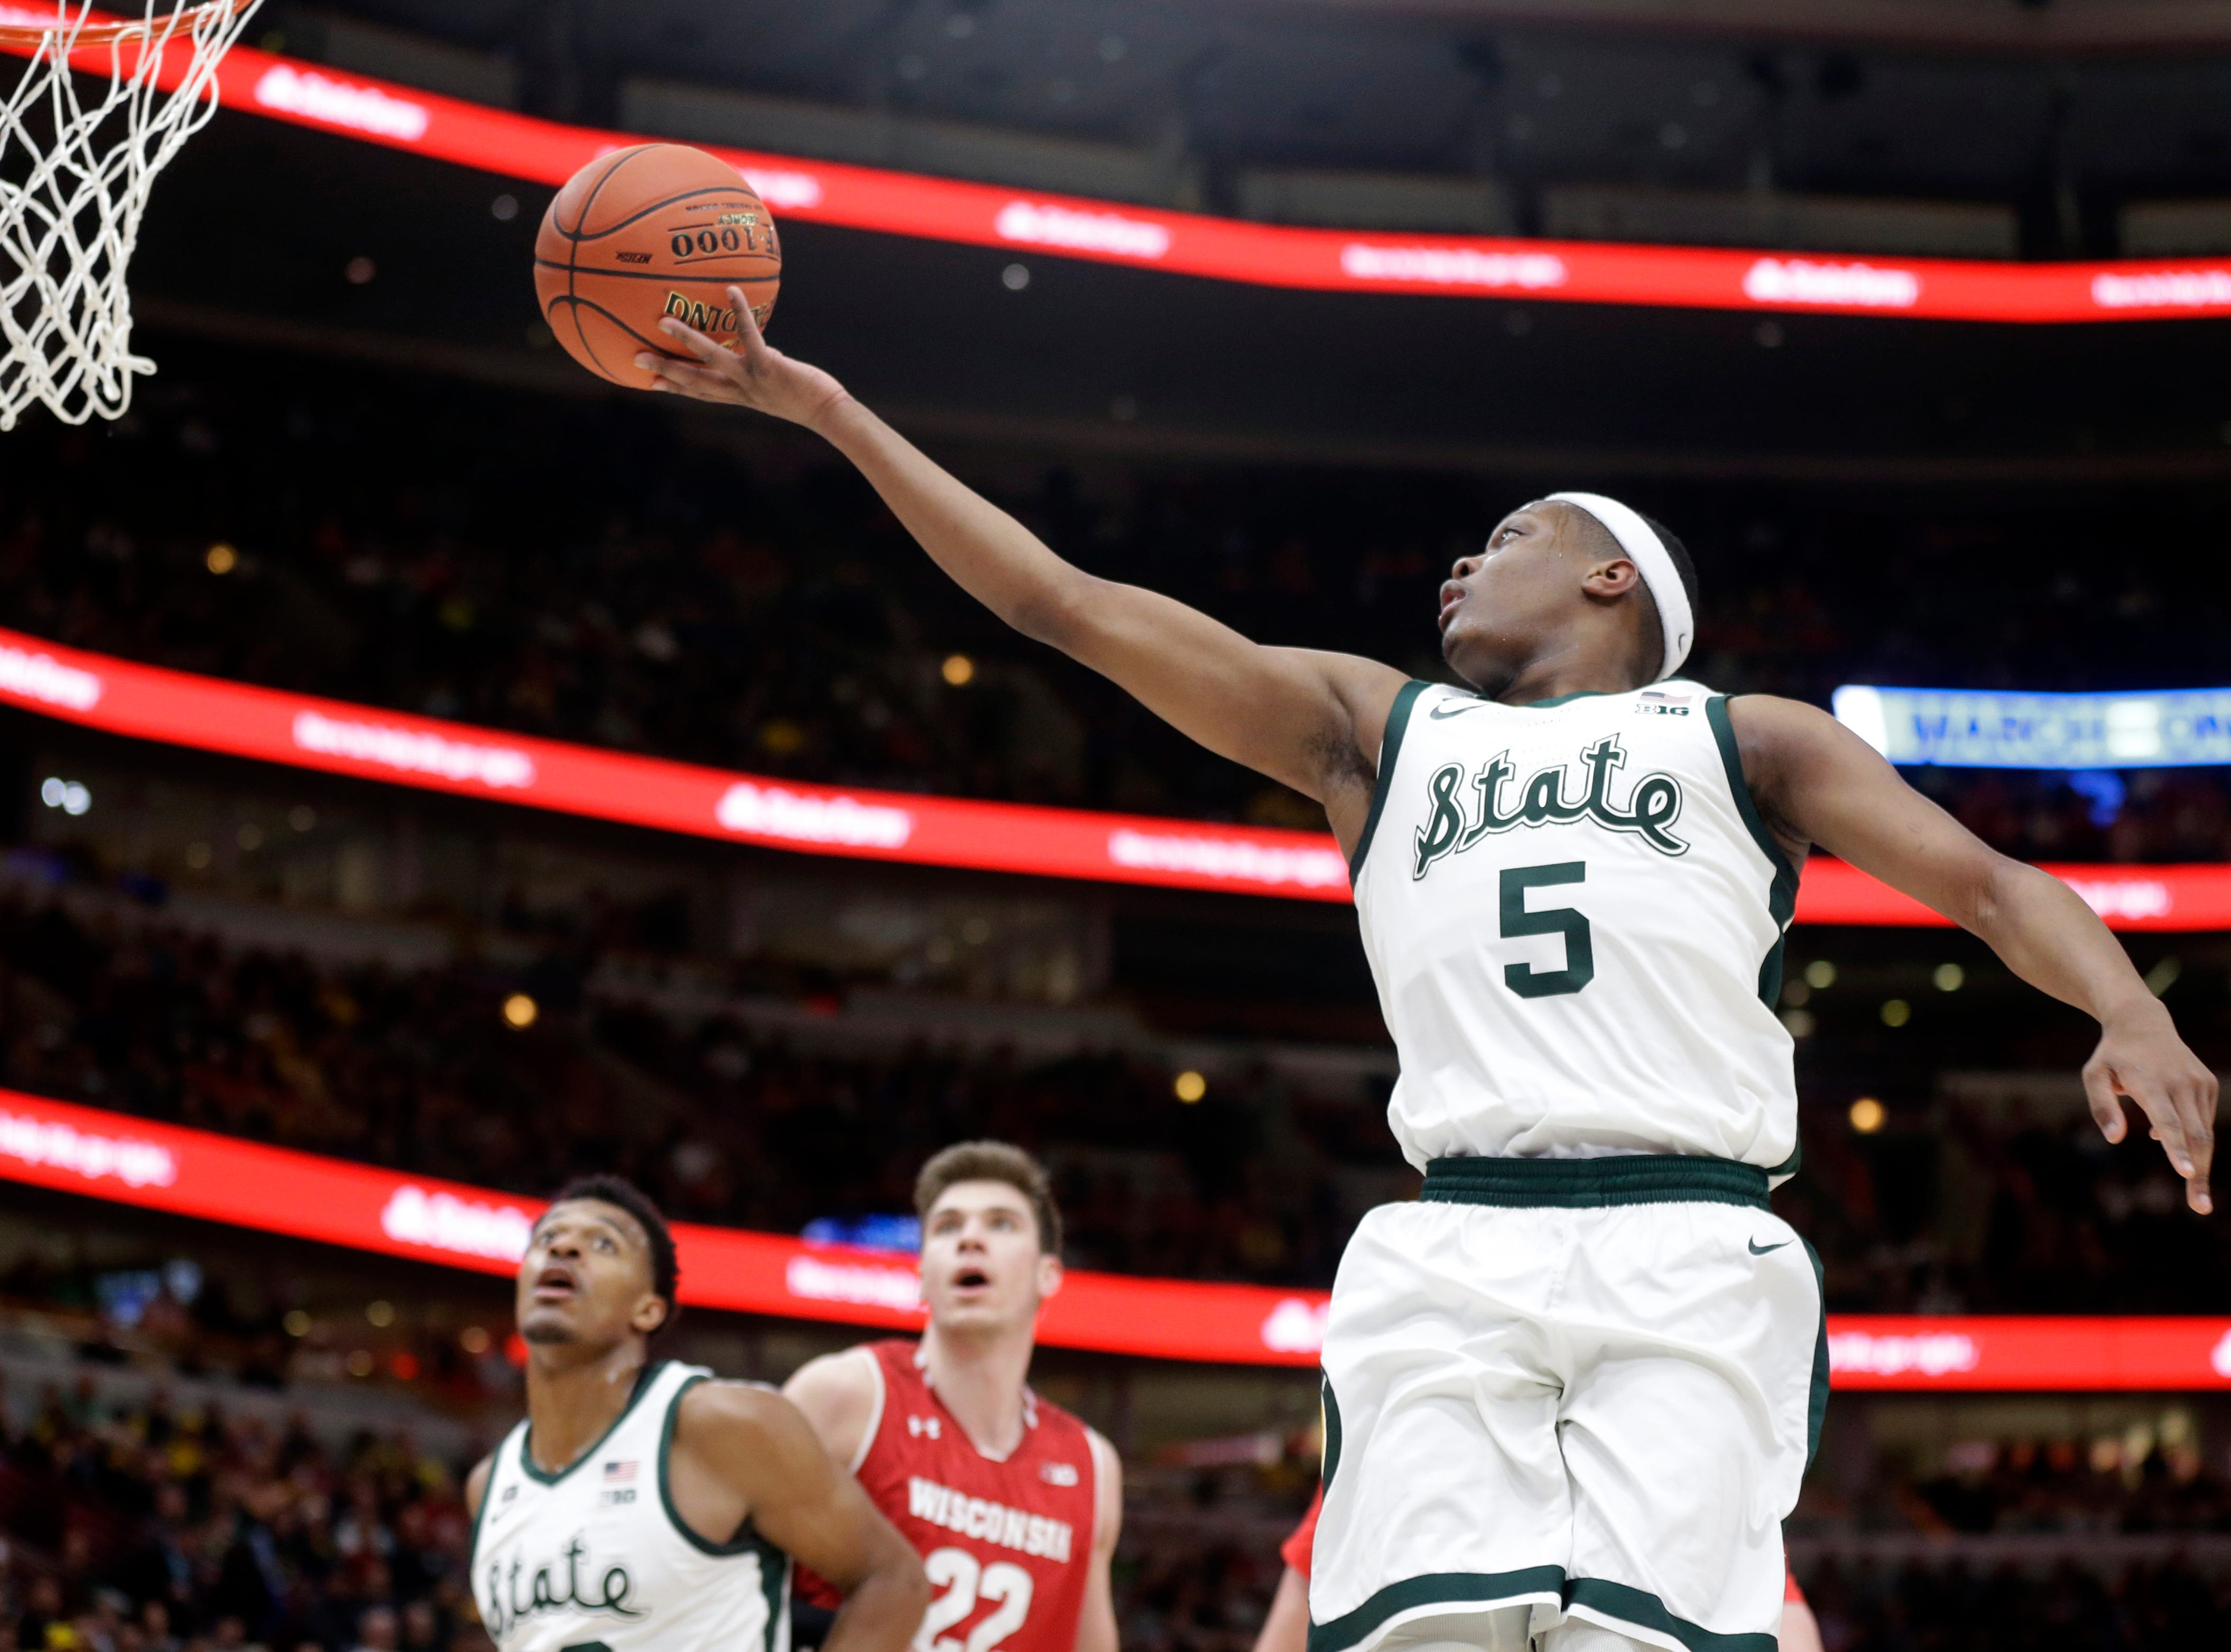 Michigan State's Cassius Winston (5) goes up for a lay up during the first half of an NCAA college basketball game against Wisconsin in the semifinals of the Big Ten Conference tournament, Saturday, March 16, 2019, in Chicago.